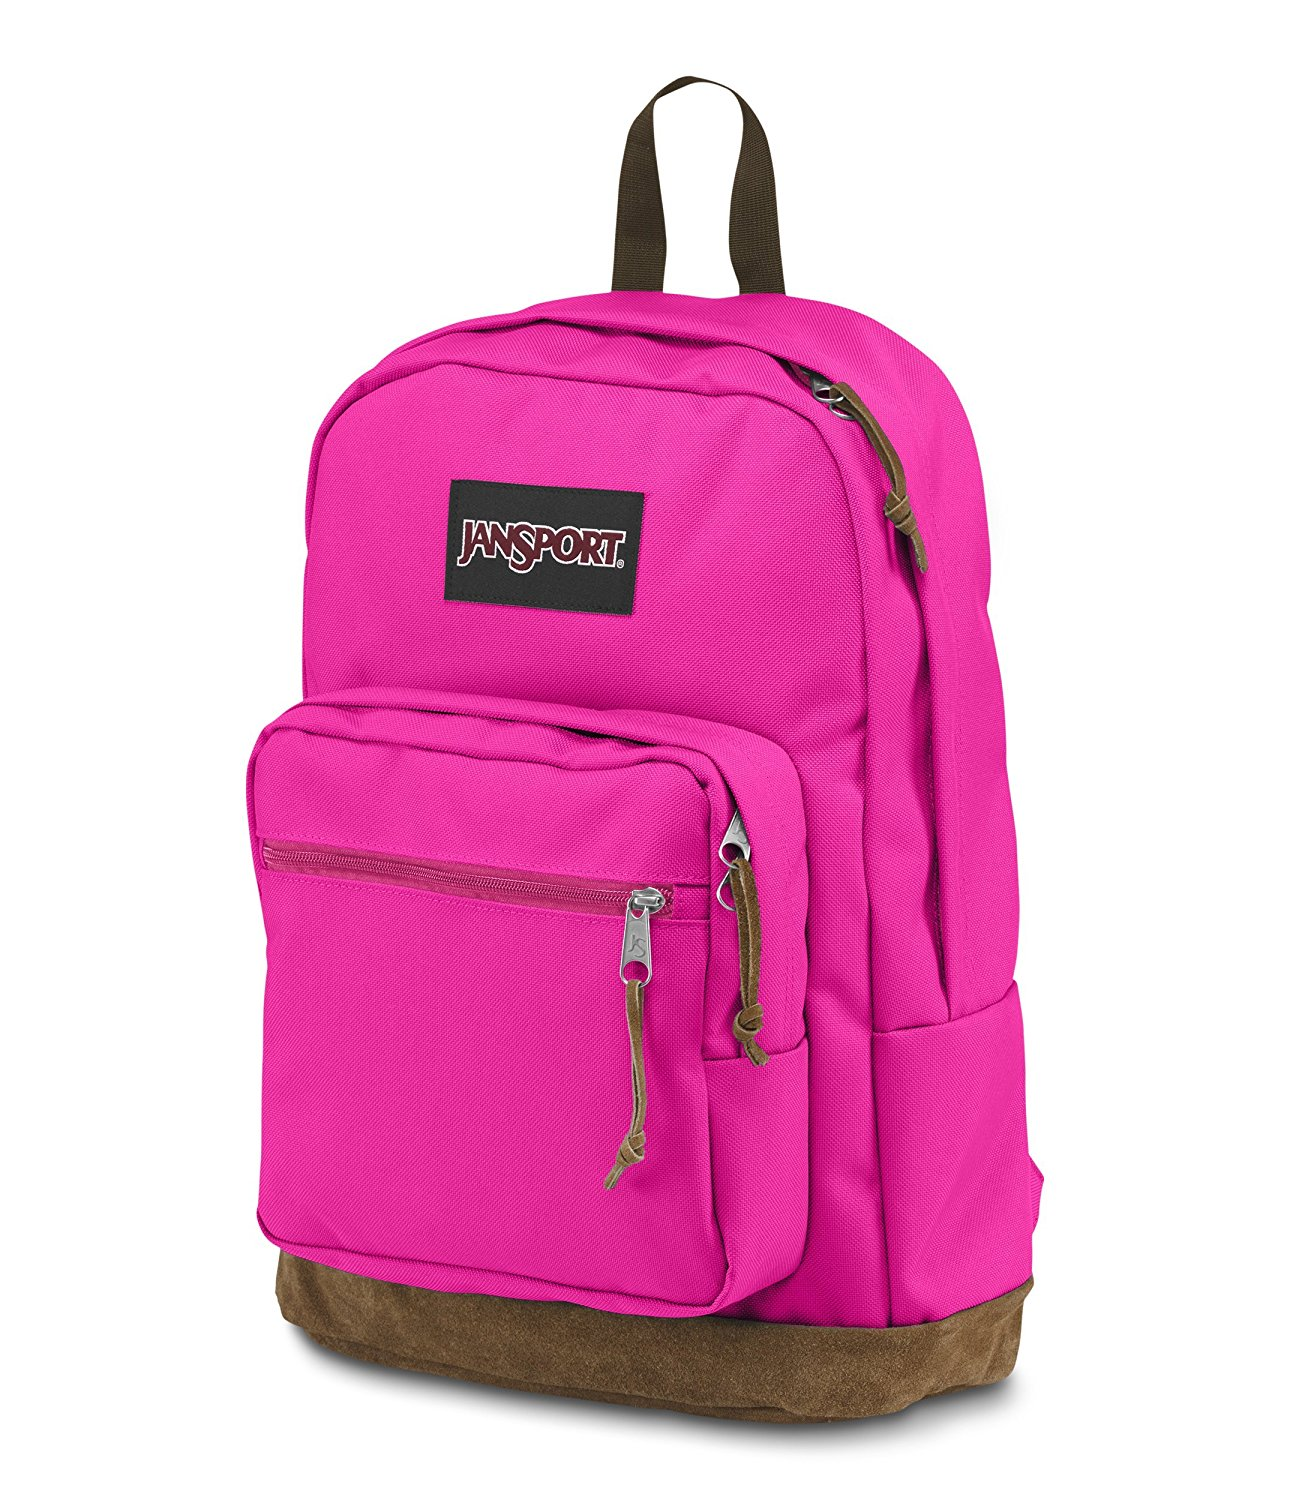 JanSport Classic Specialty Right Pack Backpack with 5 Size Choices and 31 Color Options